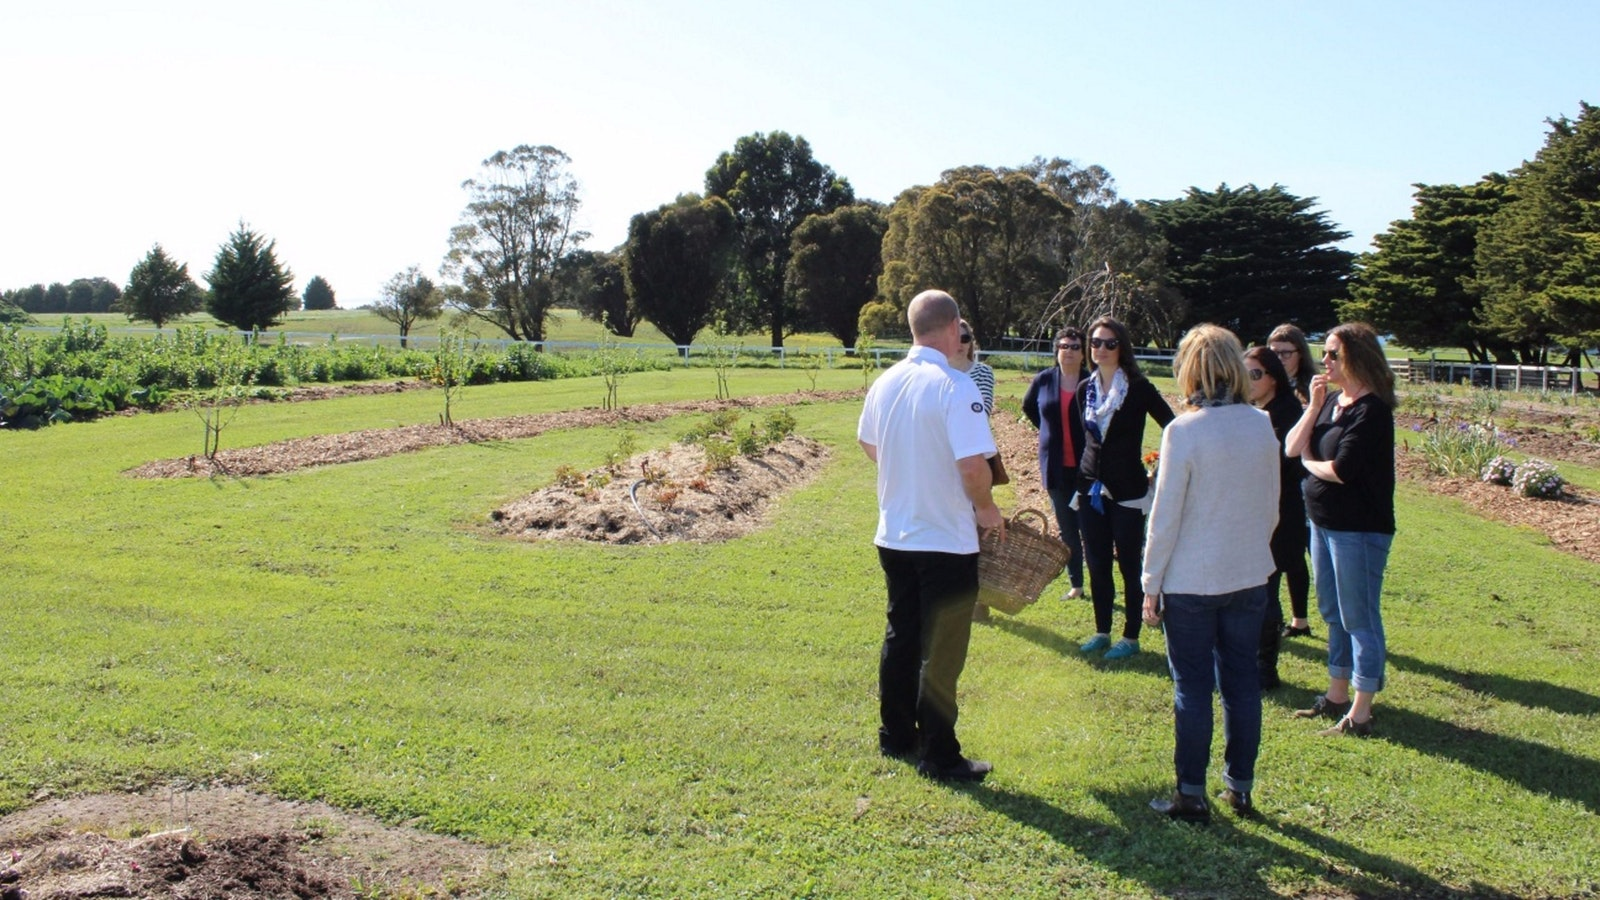 Visits to Mornington Park, our very own produce farm